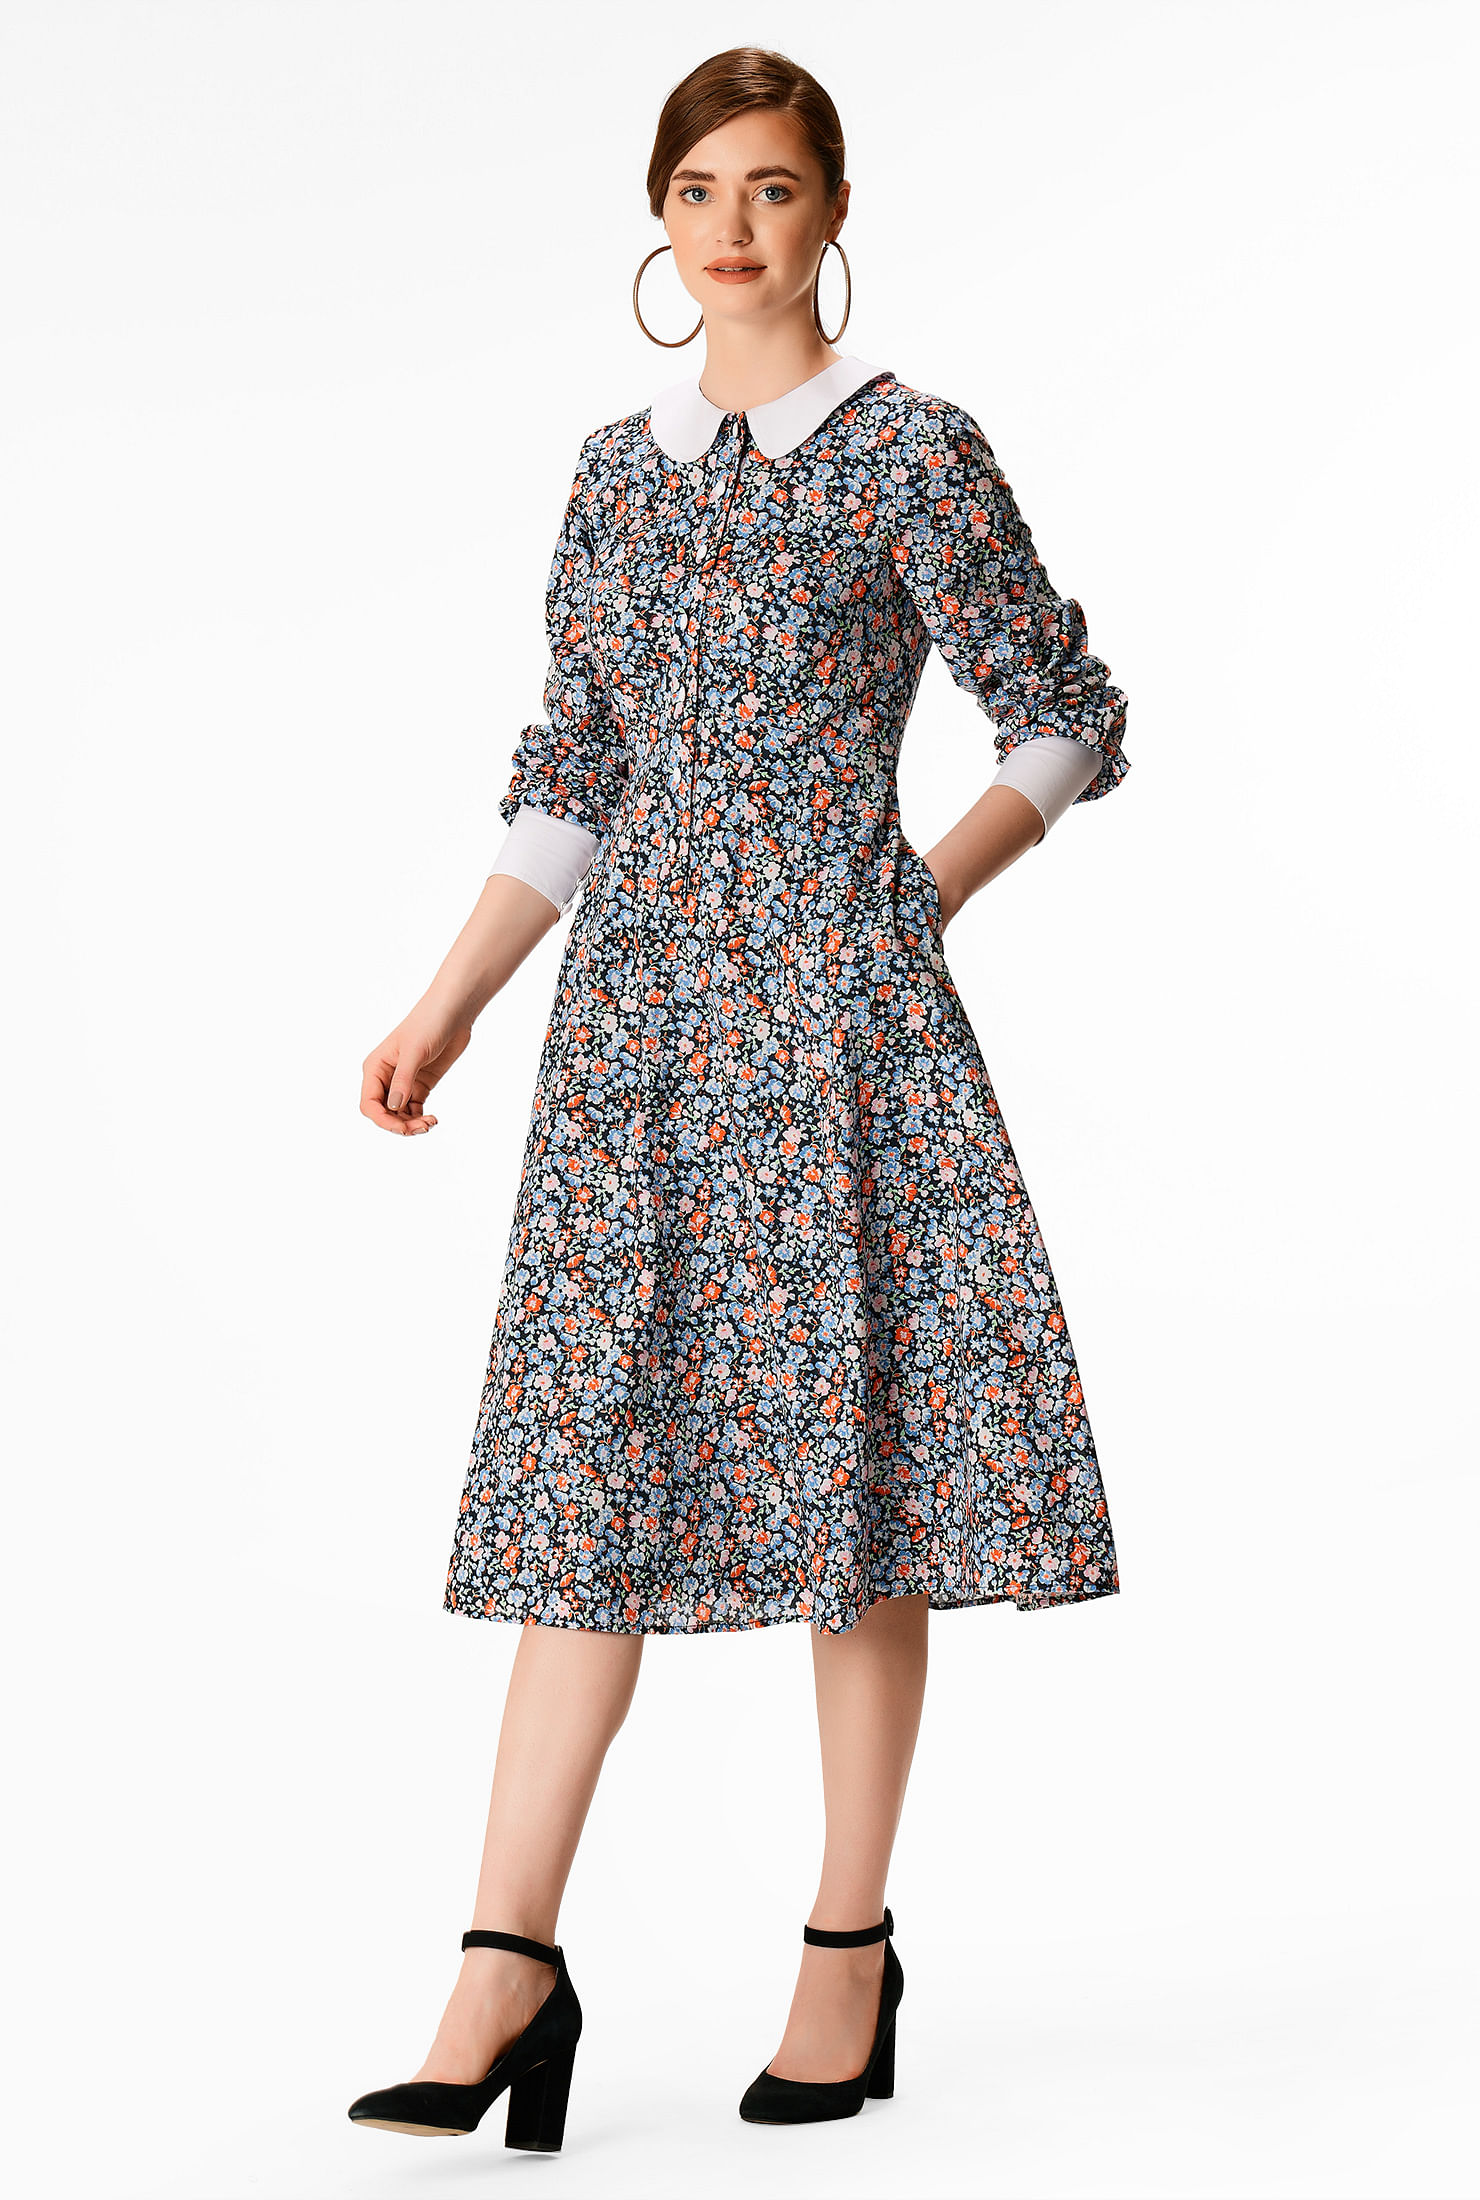 1930s Day Dresses, Afternoon Dresses History Contrast collar floral print cotton shirtdress $84.95 AT vintagedancer.com